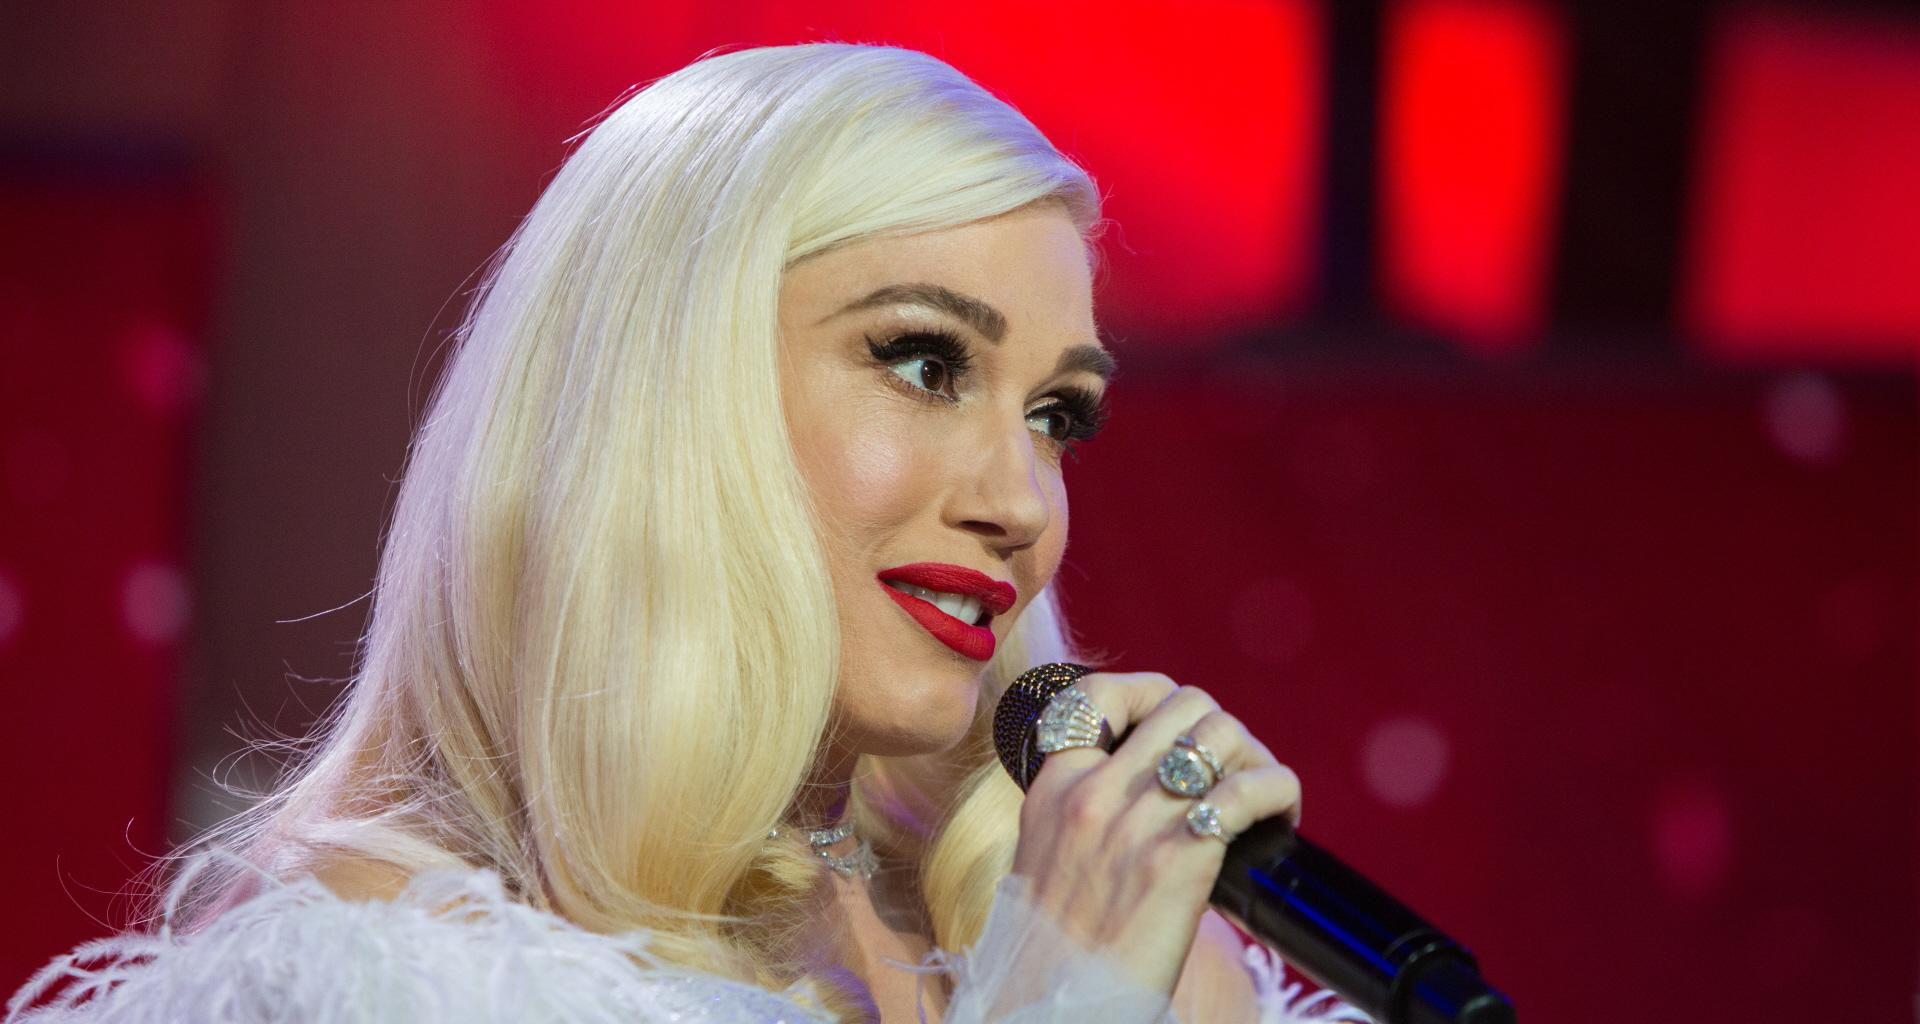 Gwen Stefani Exposes Herself After Forgetting Her Own Song's Lyrics In Hilarious Viral Video - 'Come On You Gotta Help Me'